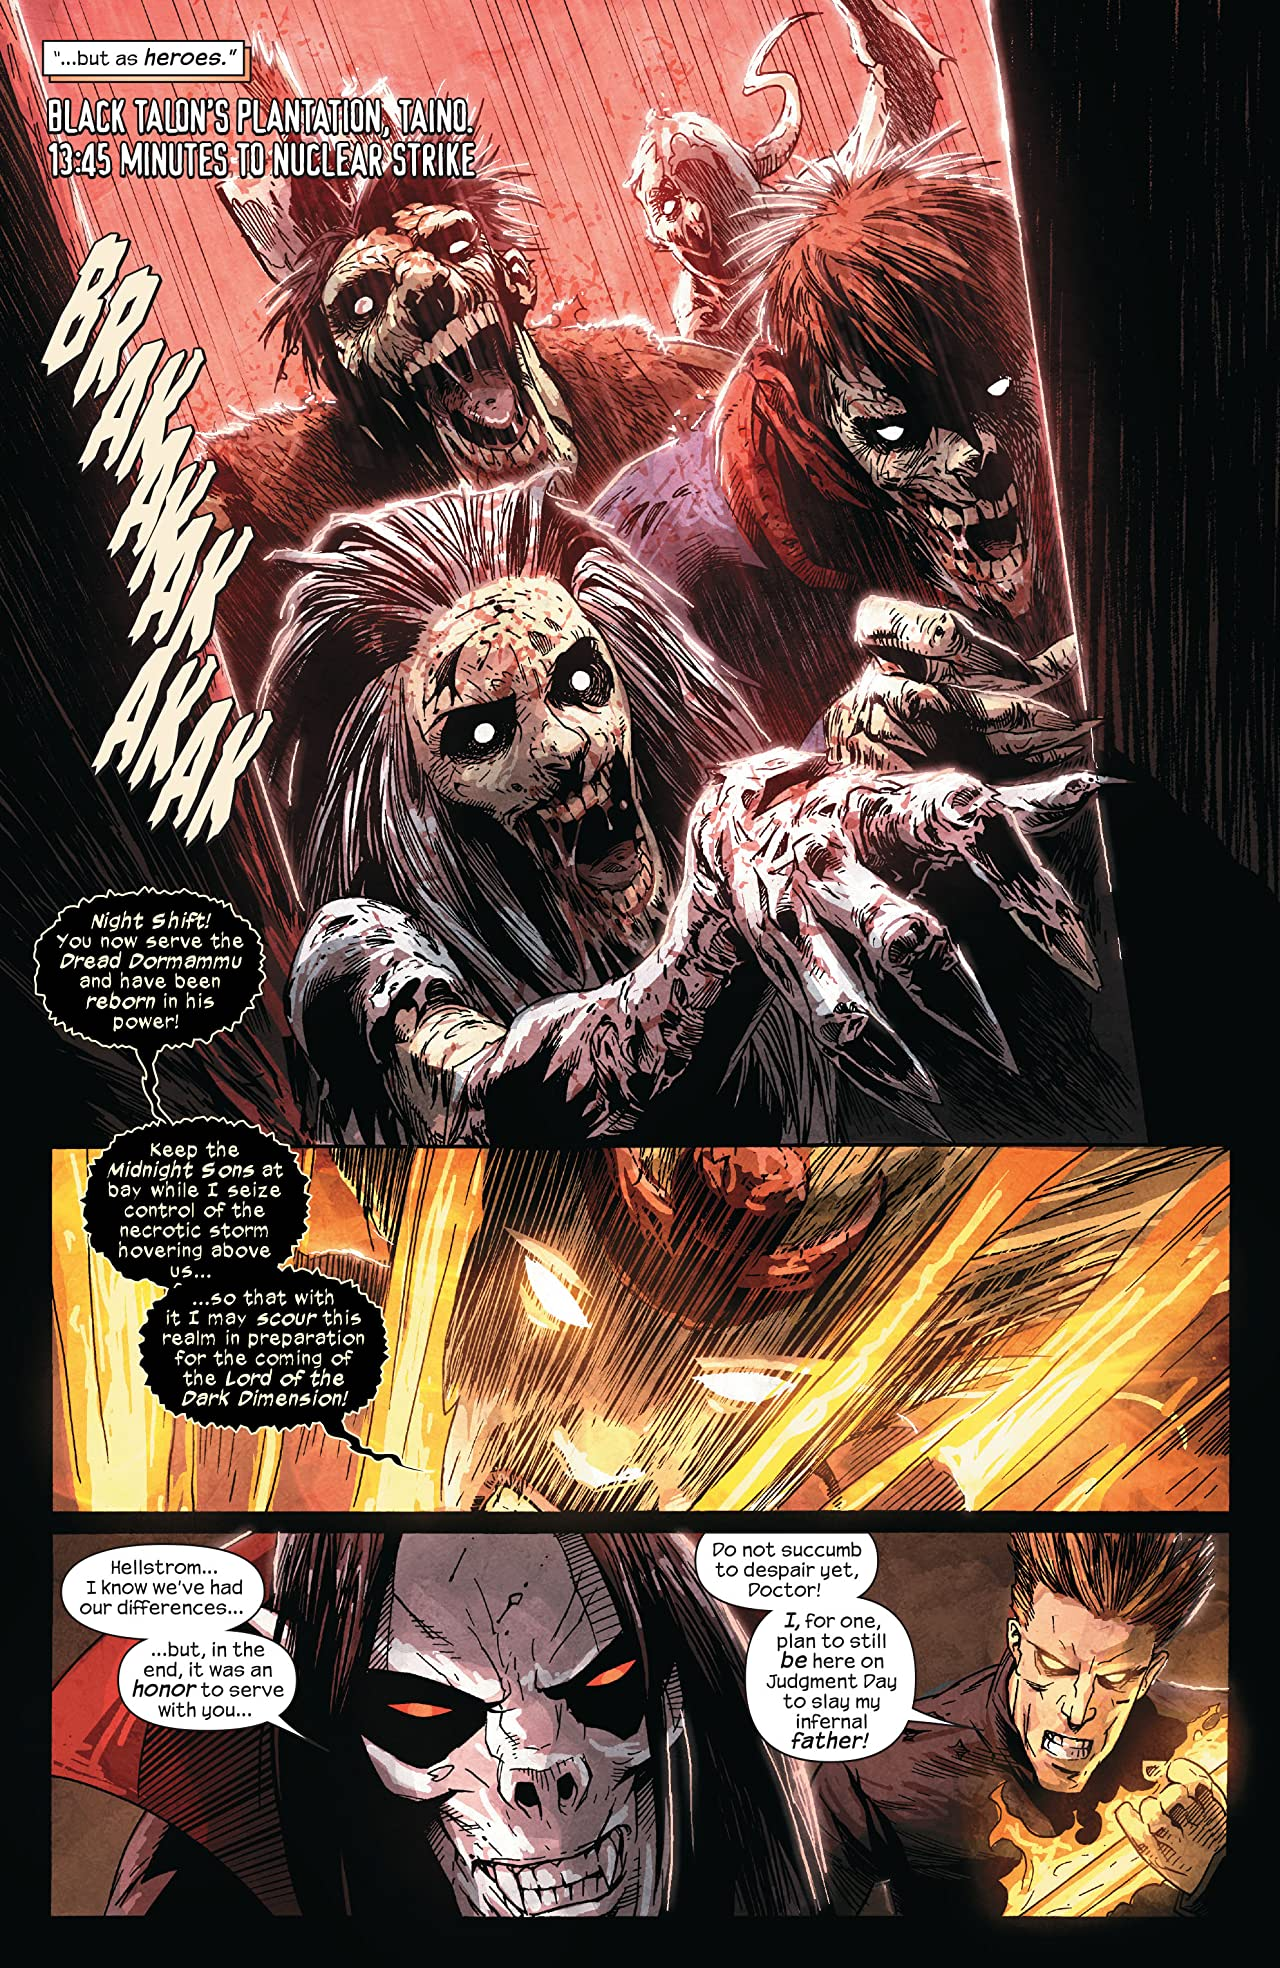 Marvel Zombies 4 #4 (of 4)